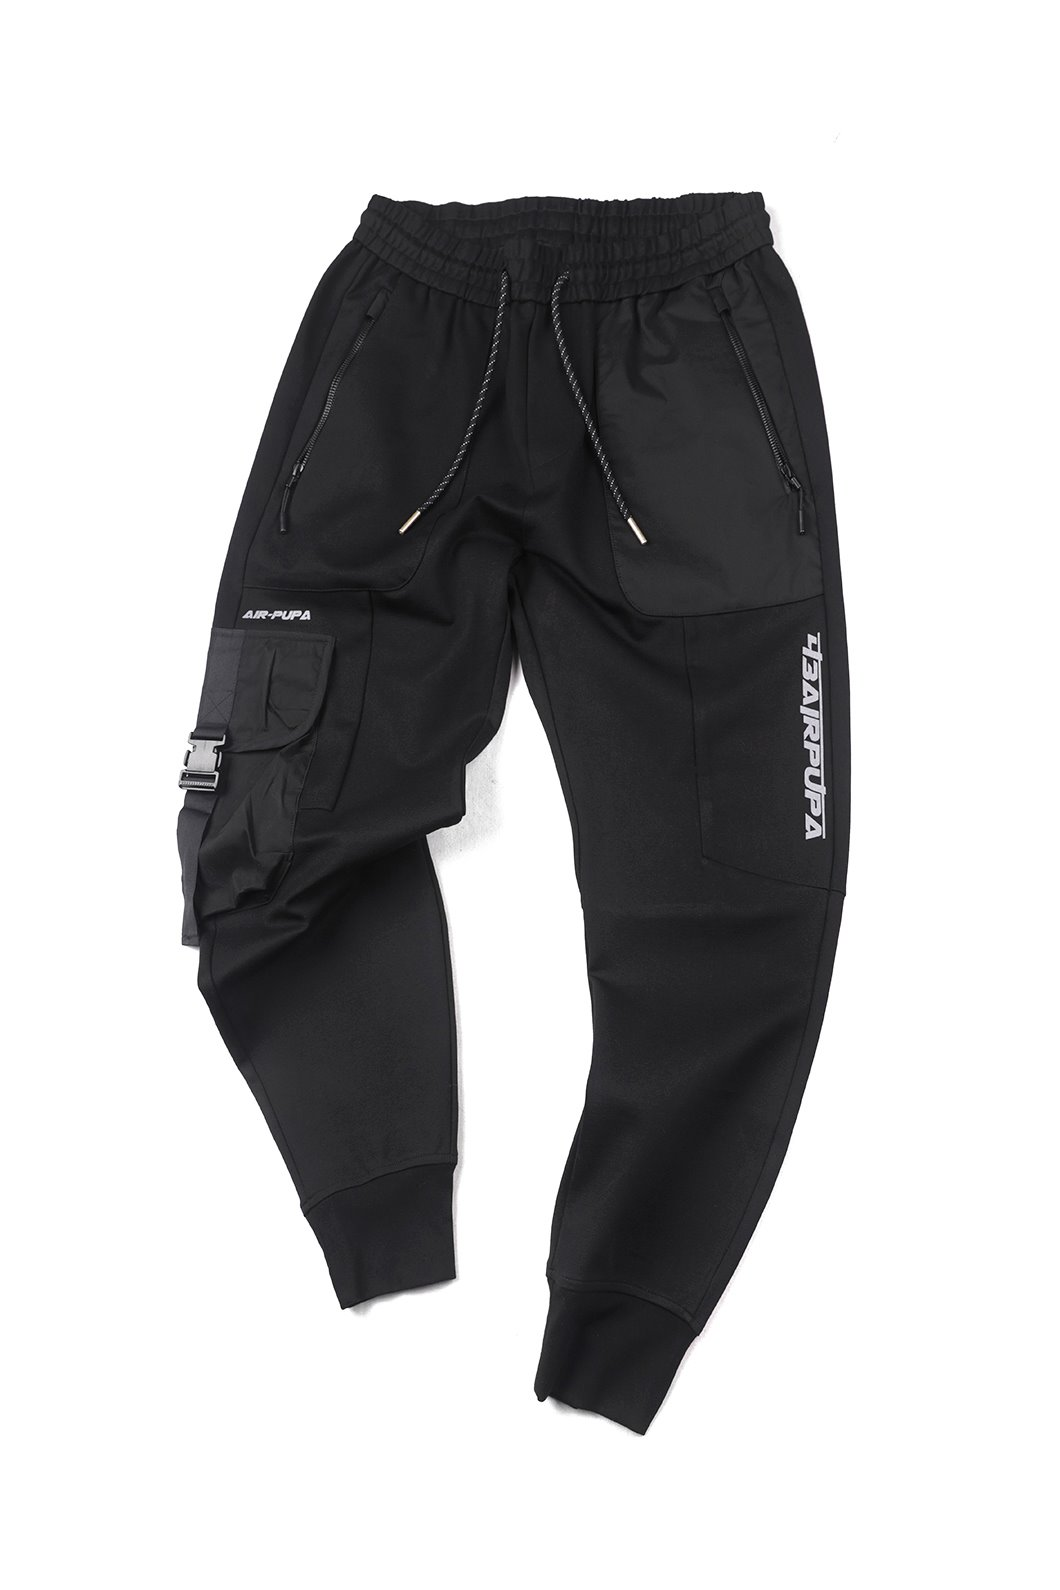 43AIRPUPA BANDING PANTS-BLACK